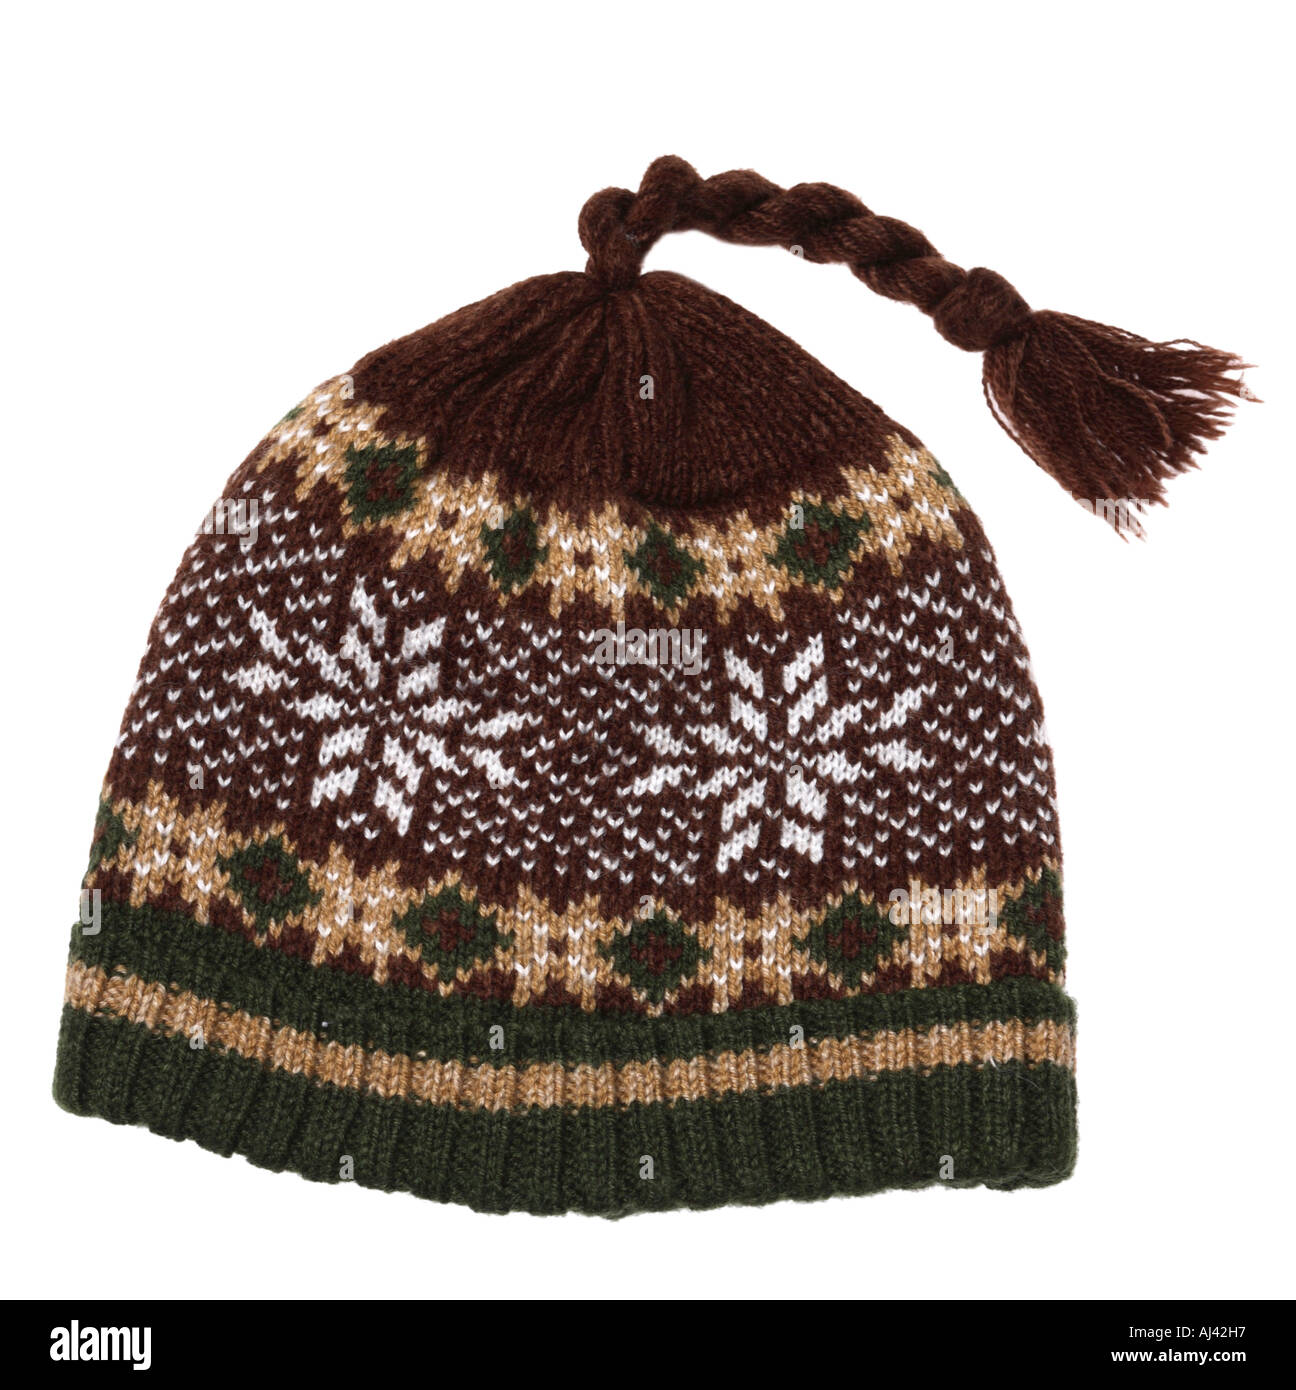 Knit Hat with Tassel - Stock Image